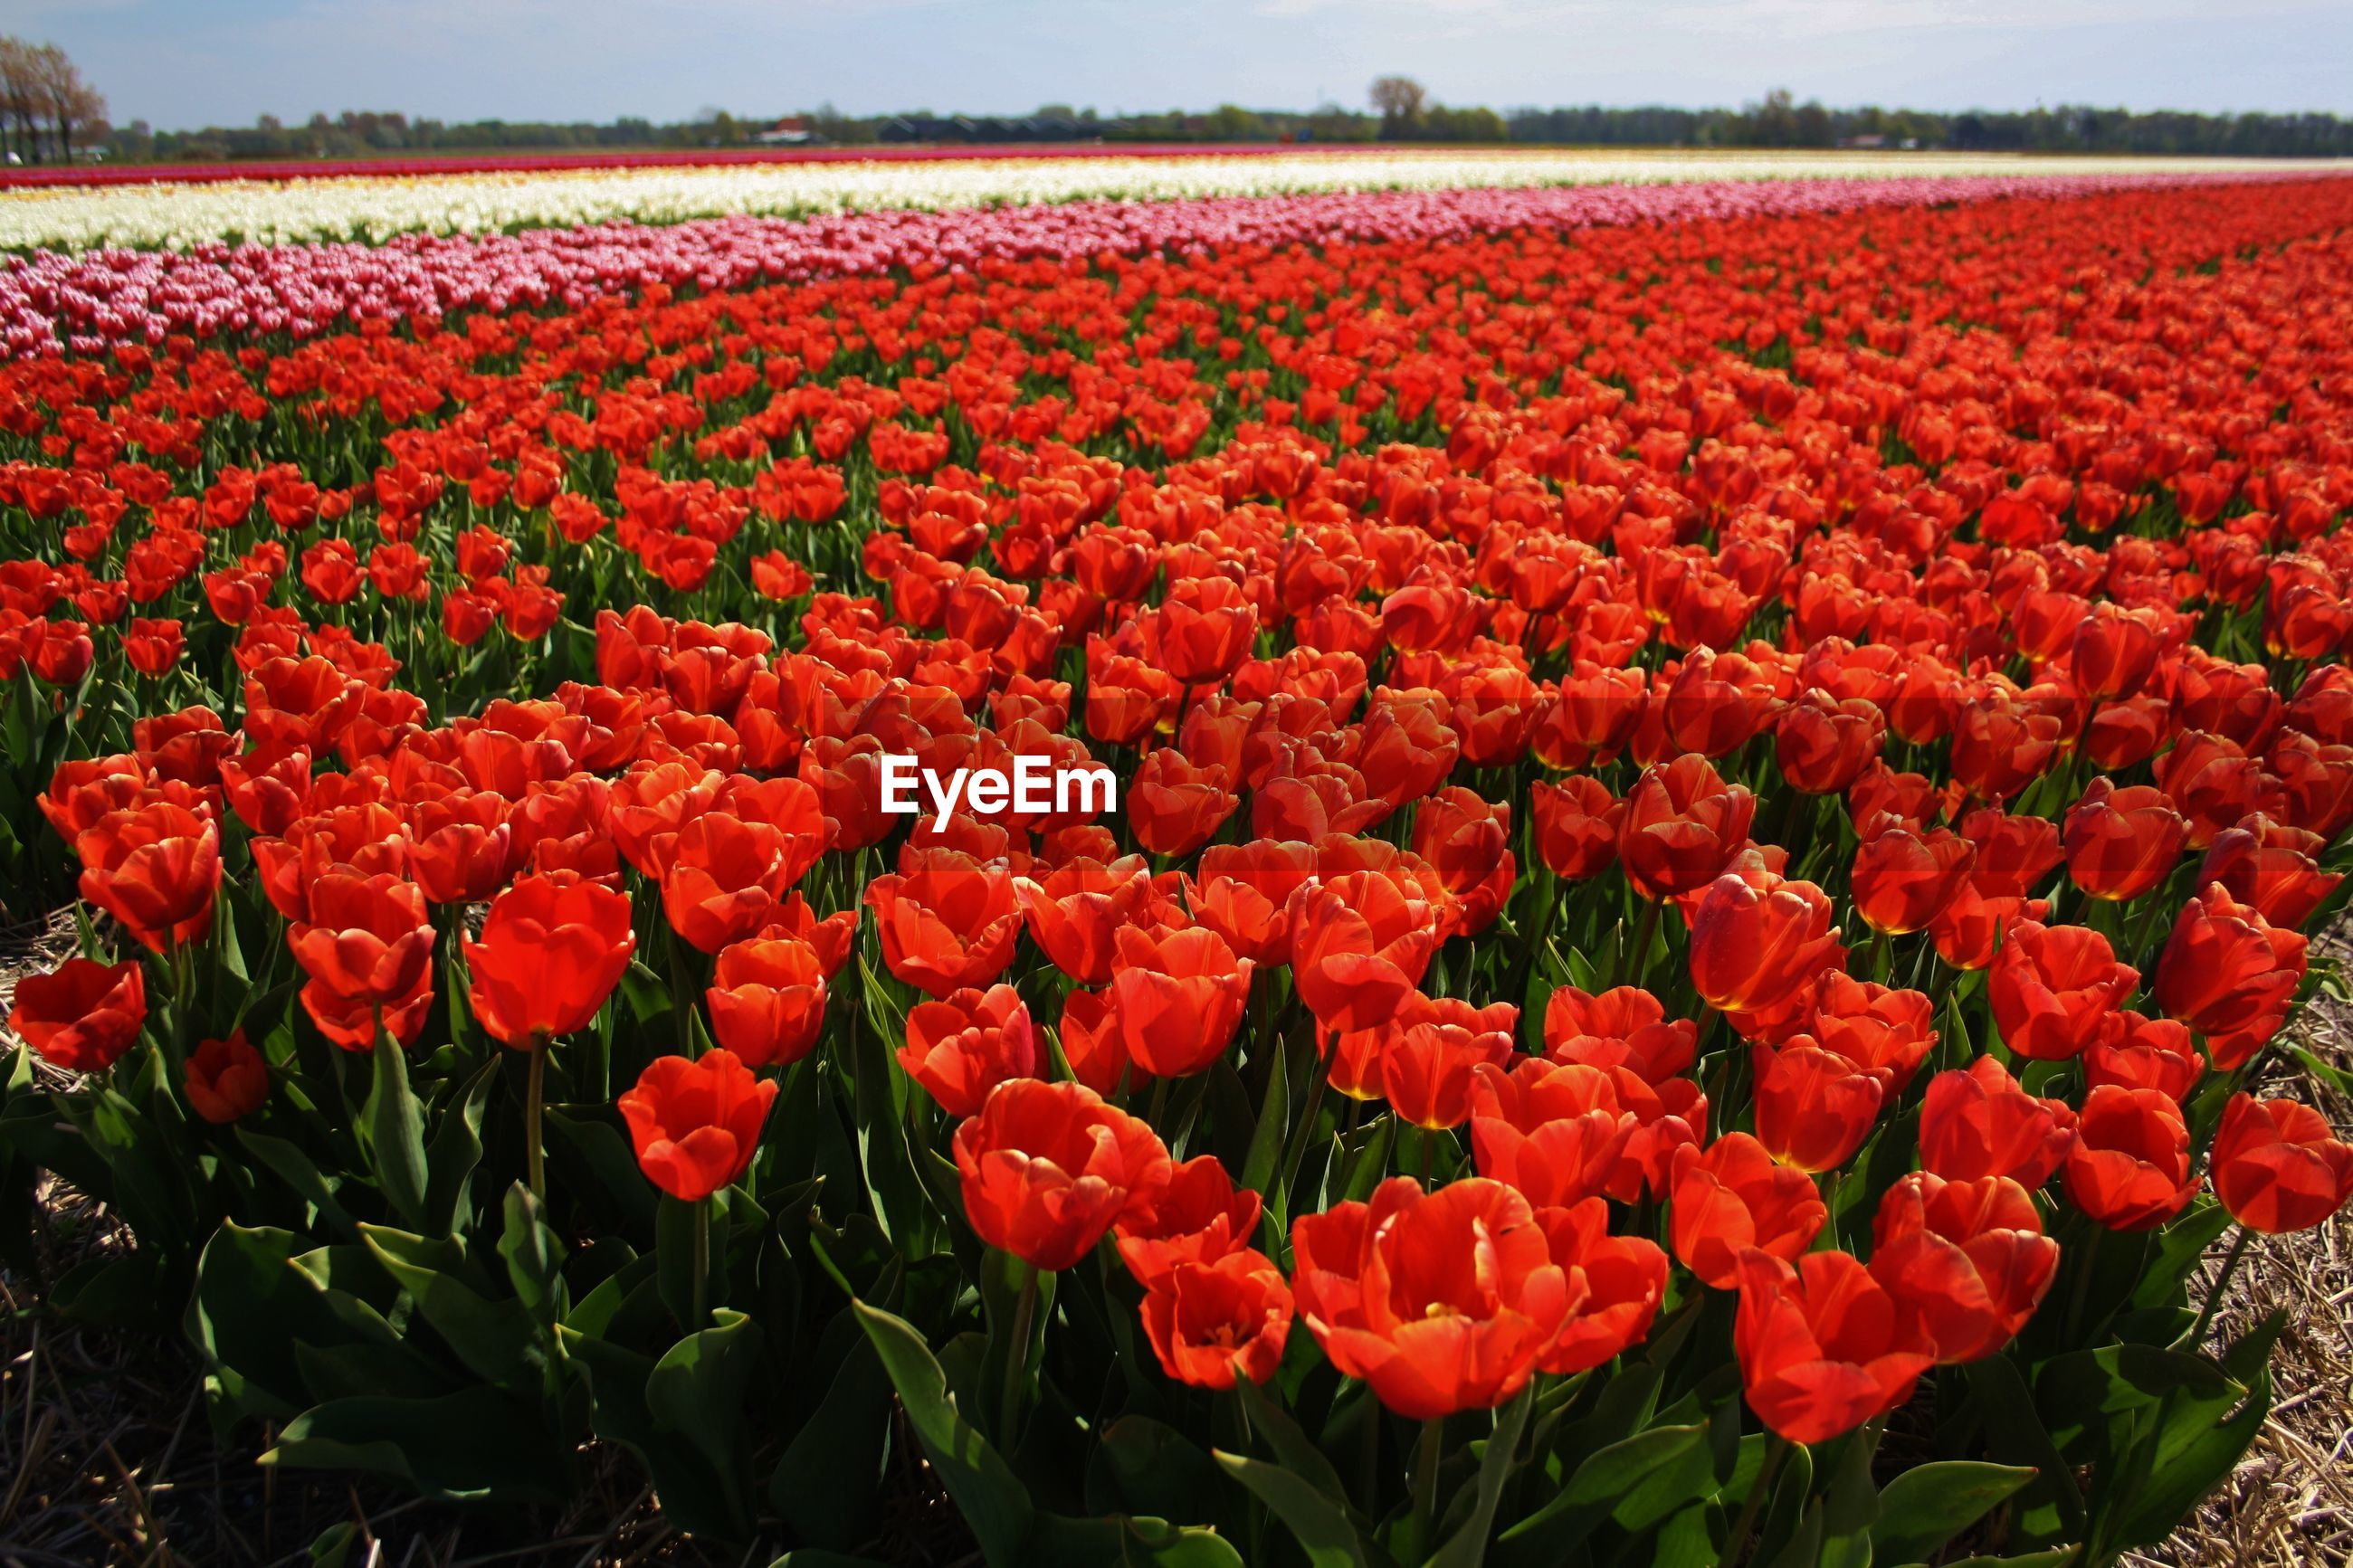 Red tulips in field